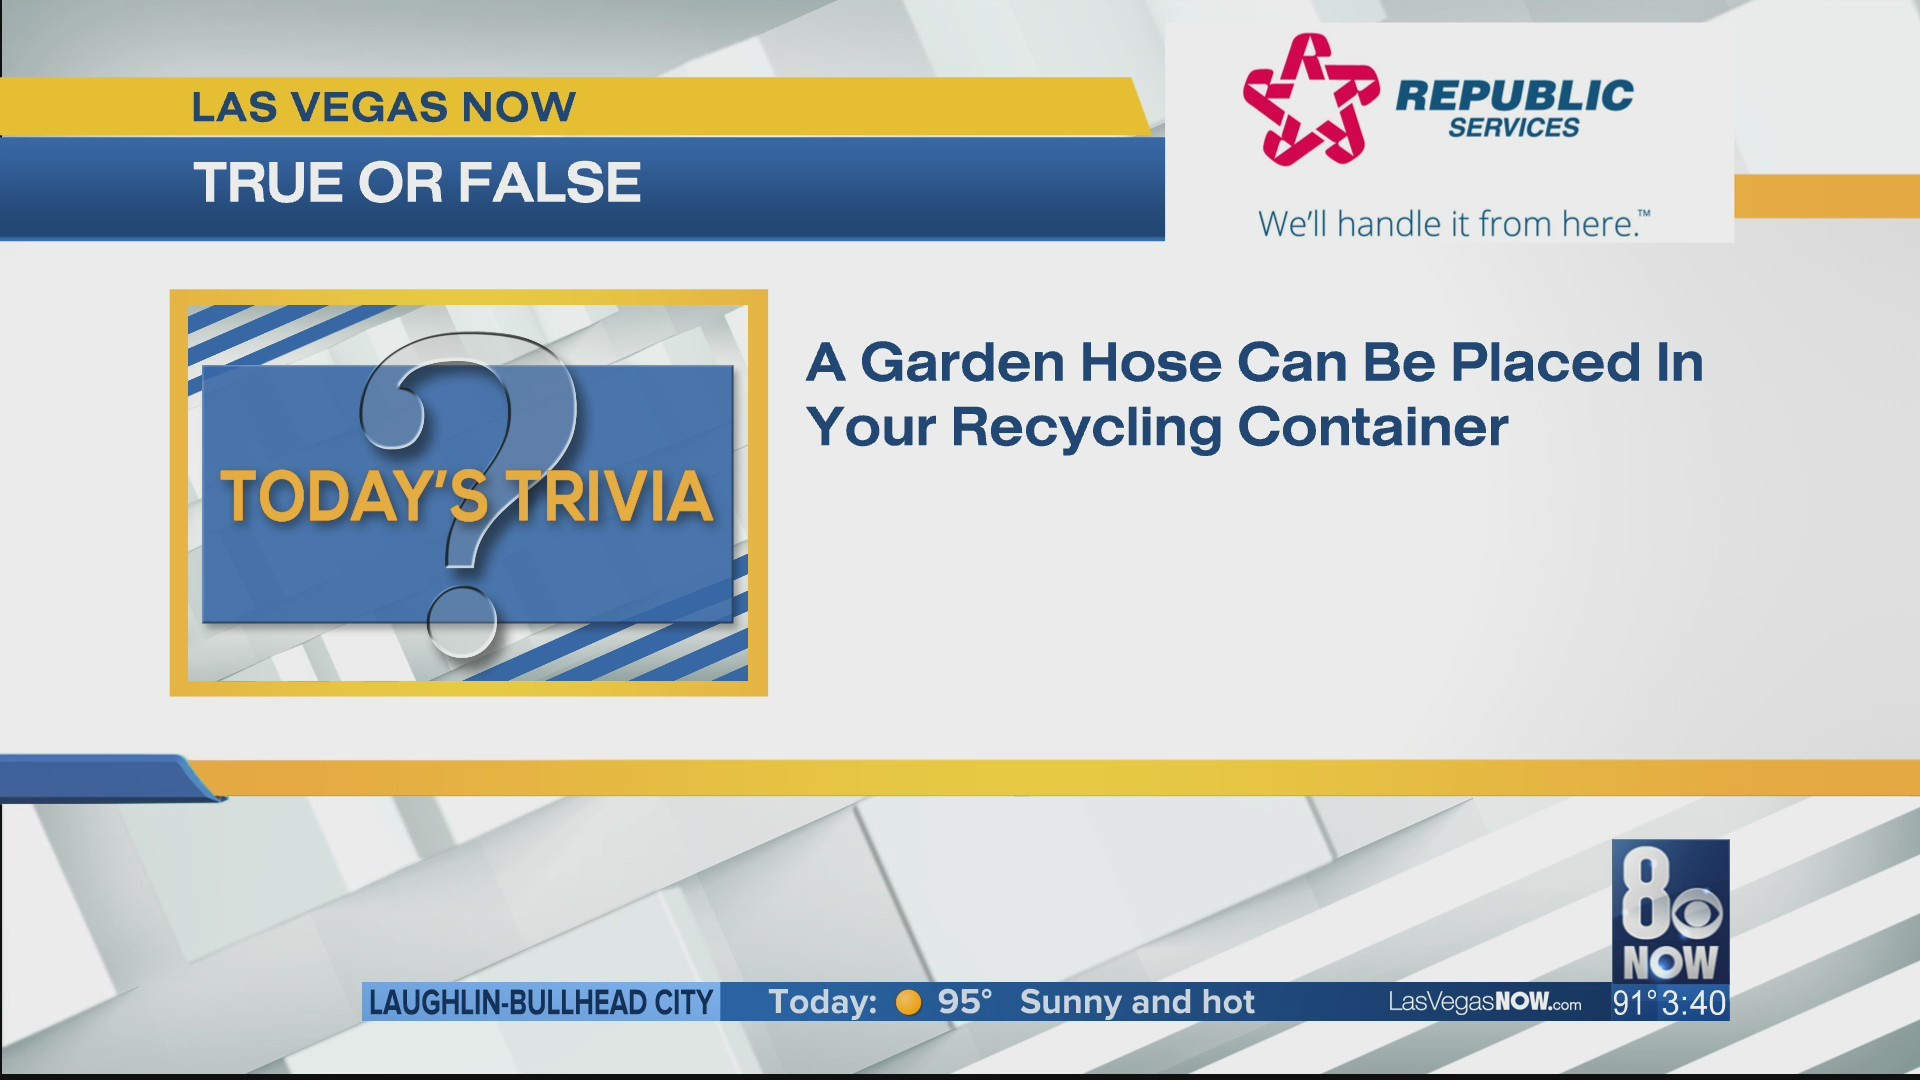 Can a garden hose be placed in the recycling?